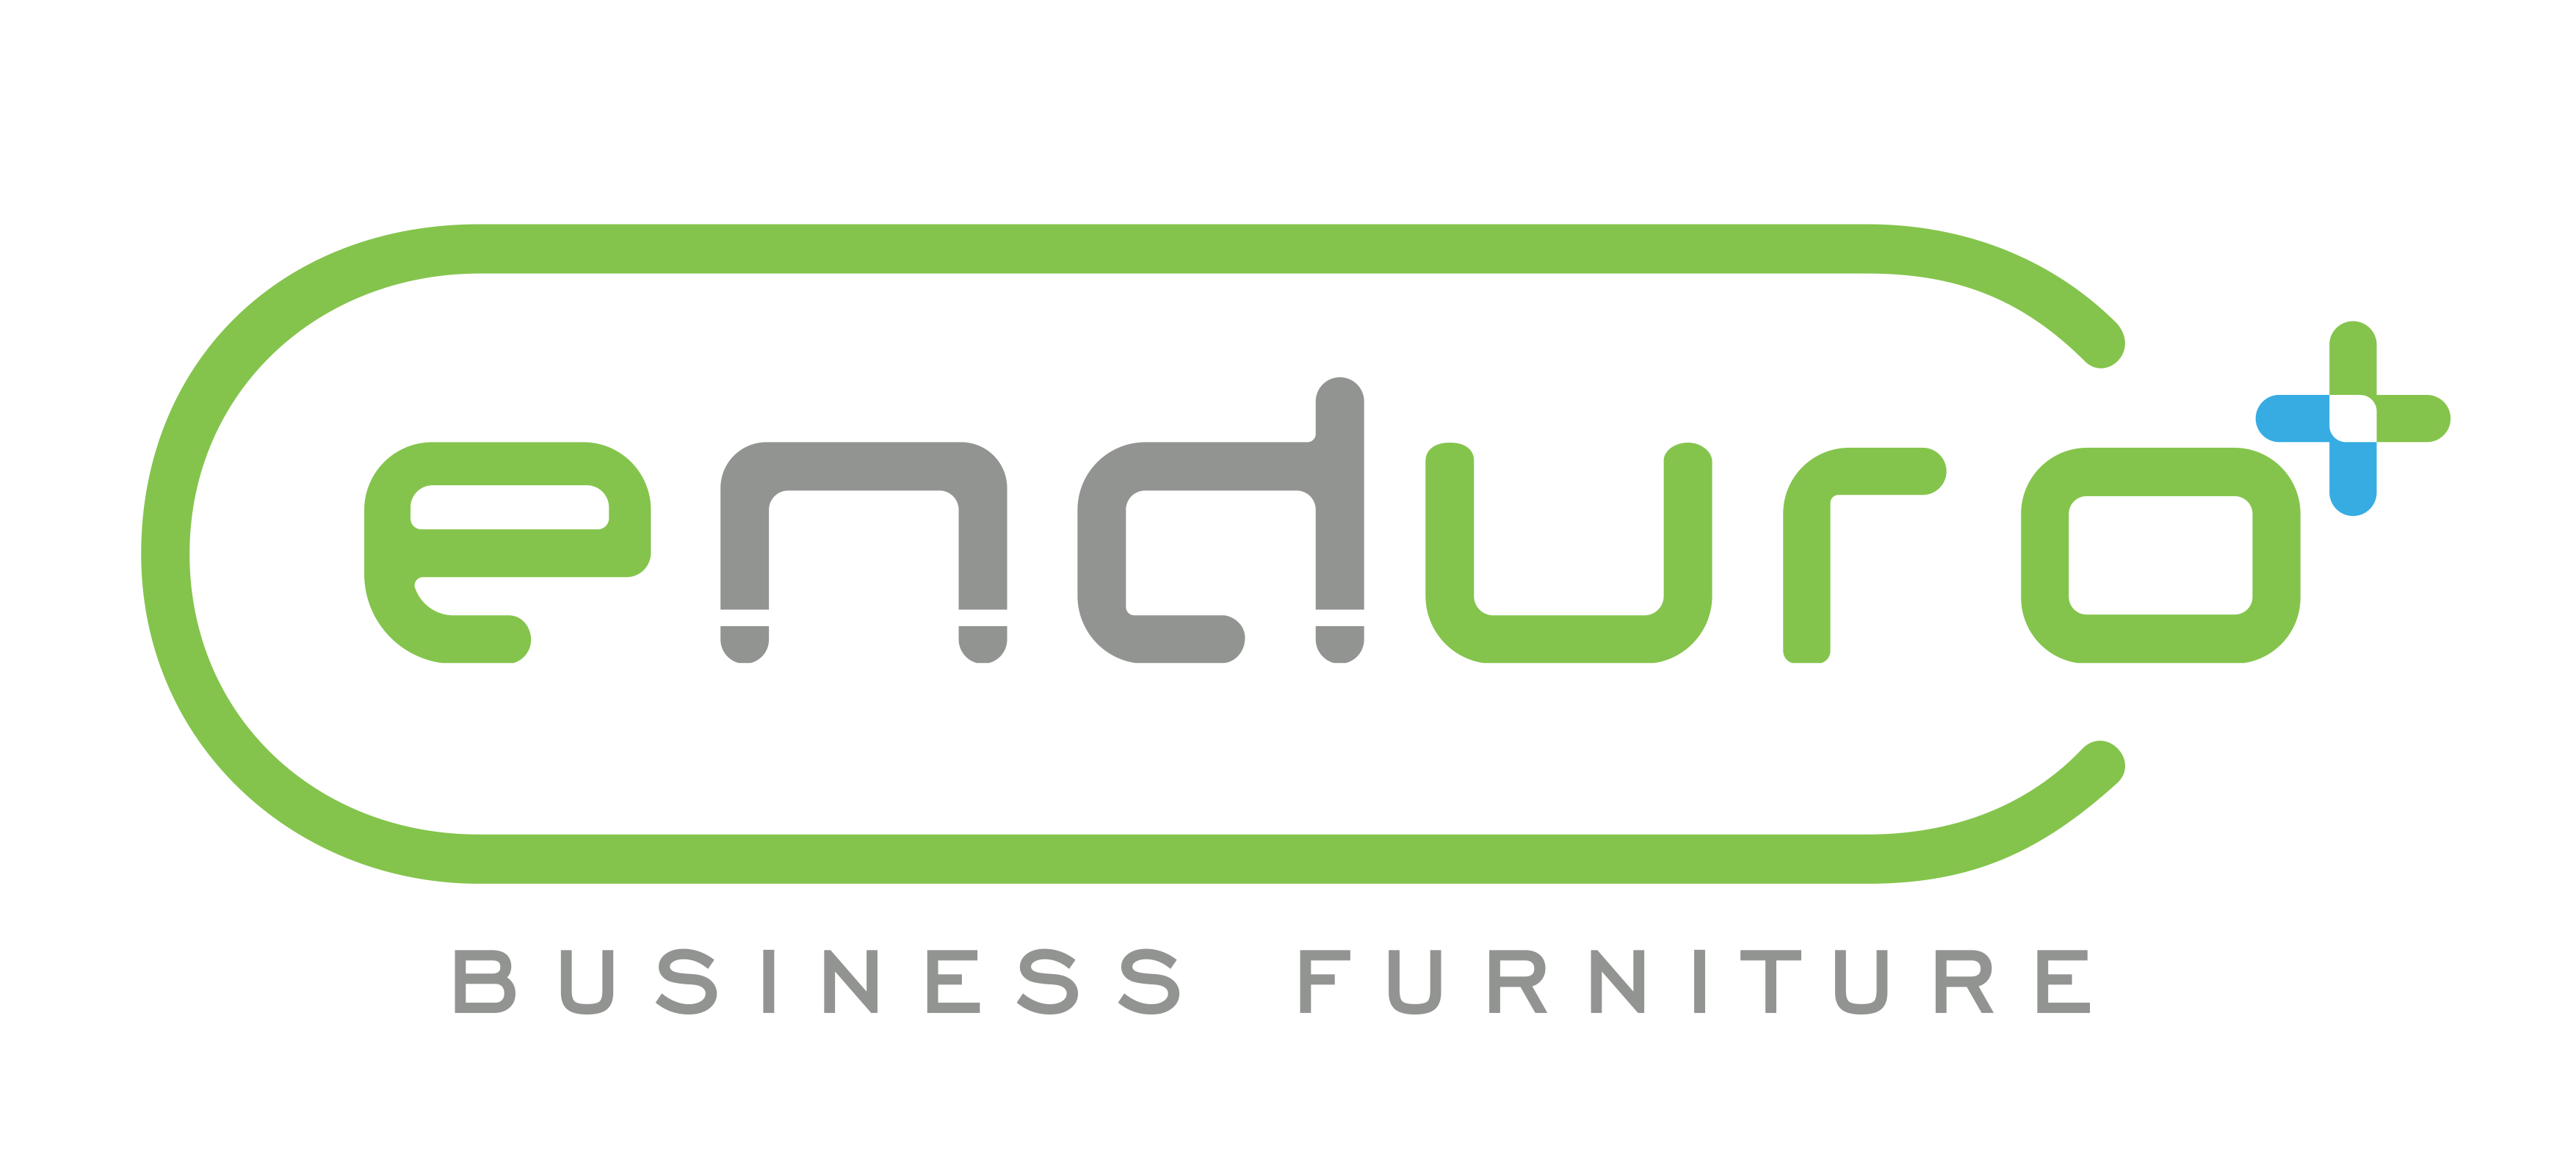 Logo Enduro Business Furniture